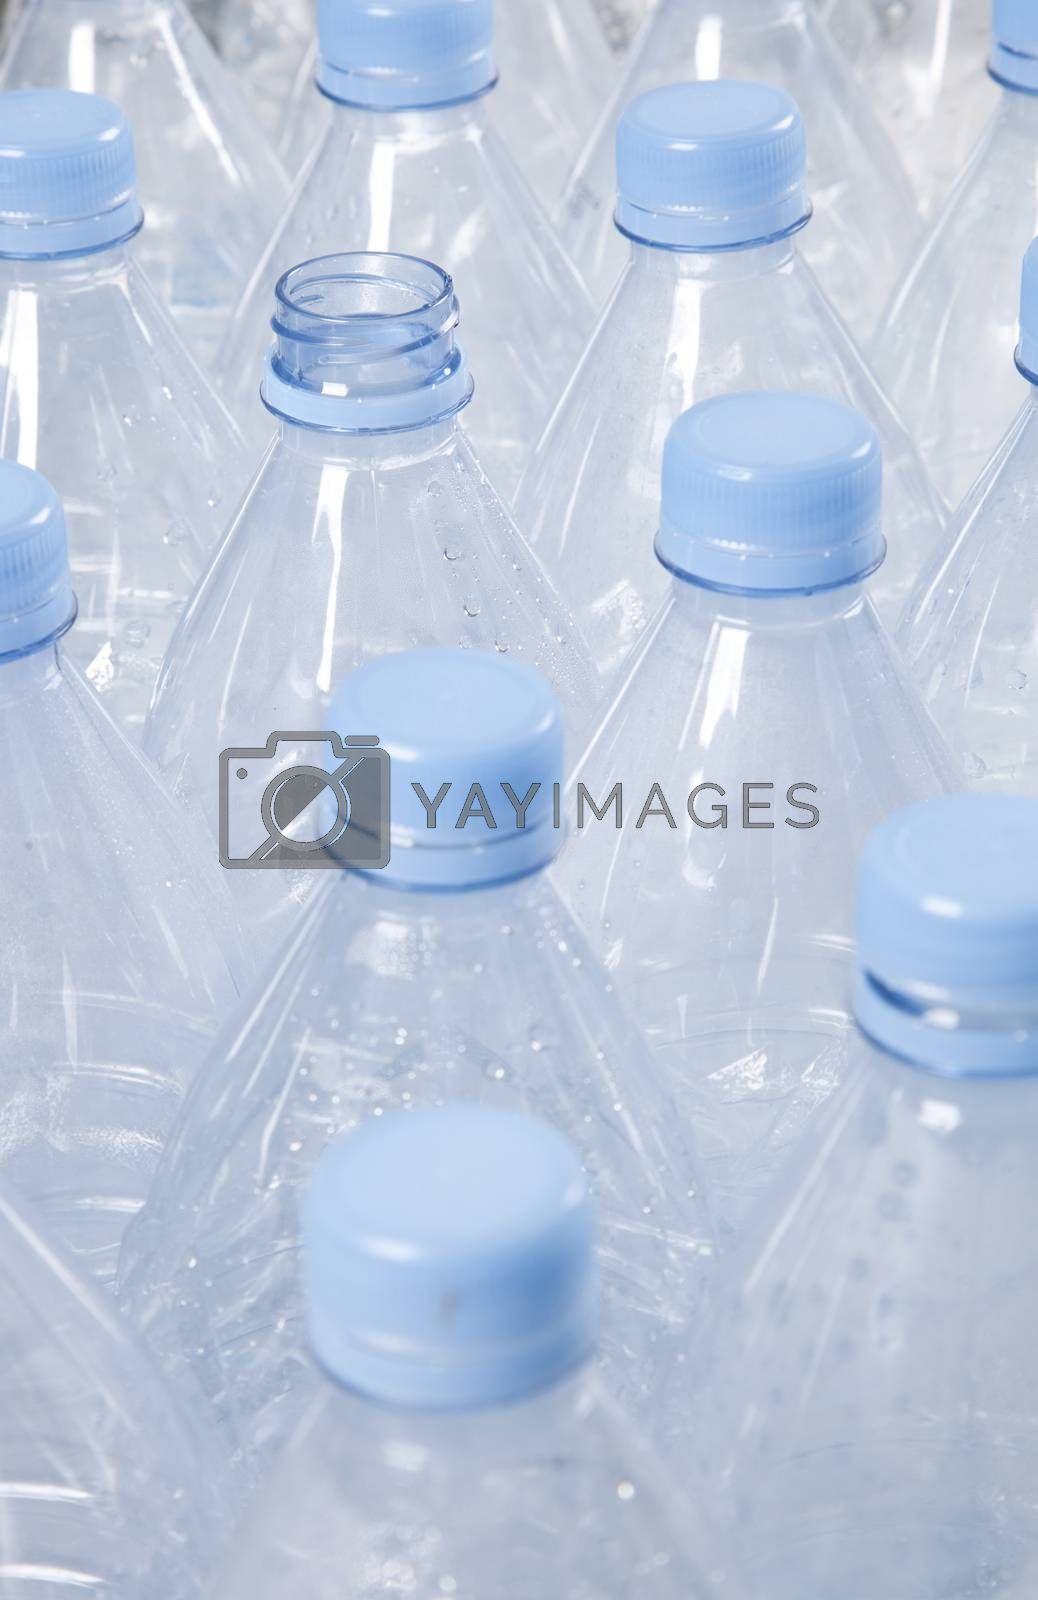 Close-up view of empty plastic bottles